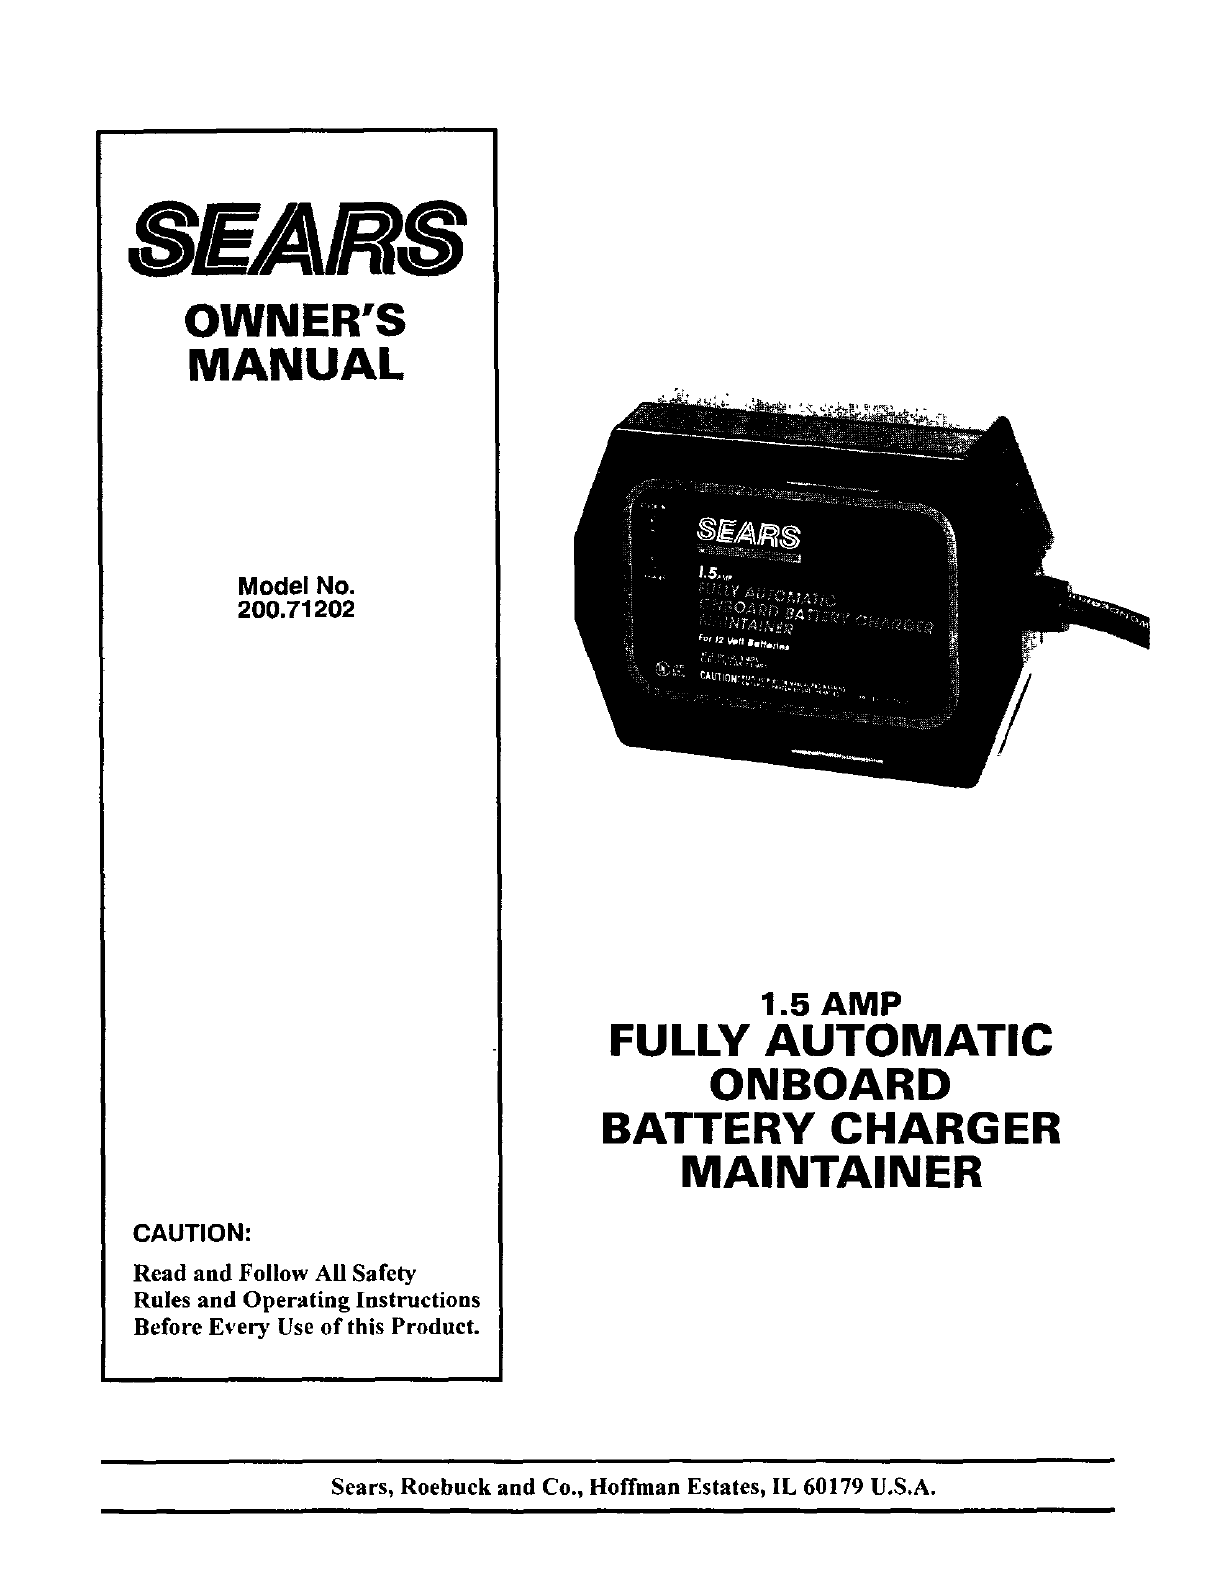 sears battery charger user manual manualsonline com sears manual battery charger engine starter sears 10/2 manual battery charger